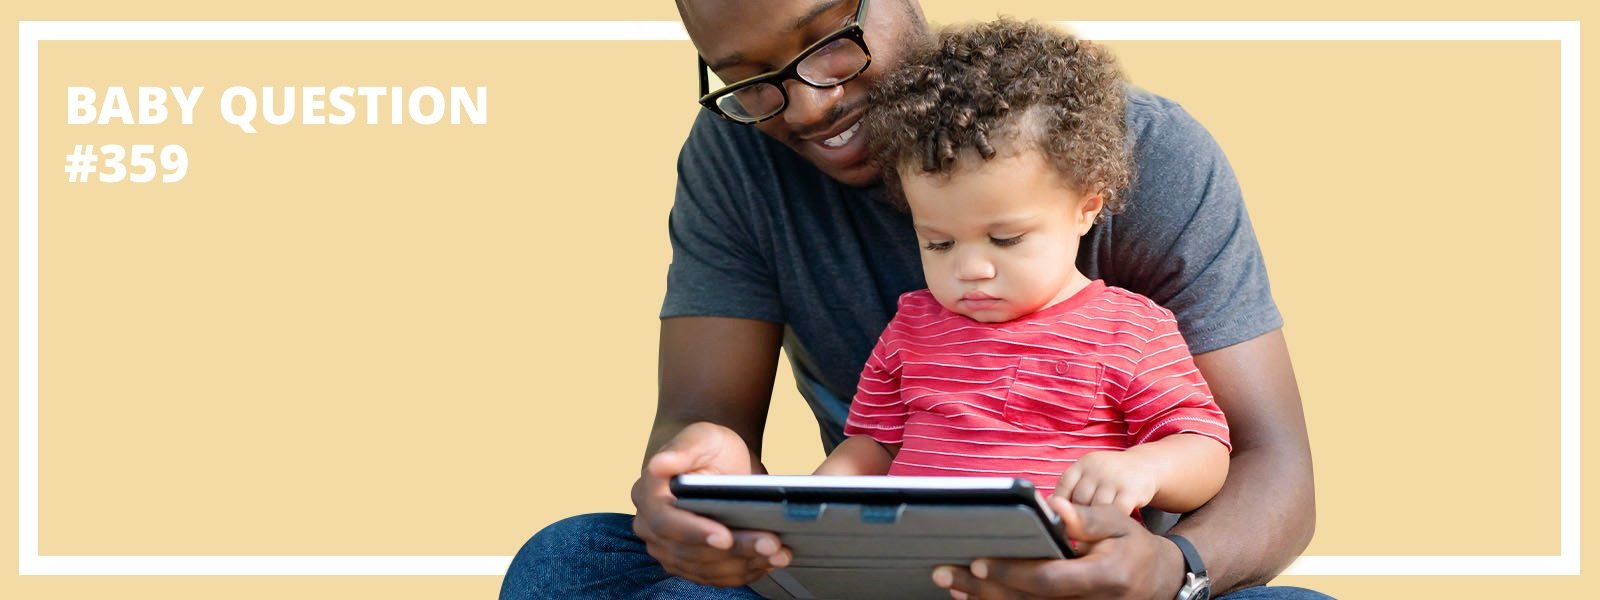 Father with baby looking at digital tablet